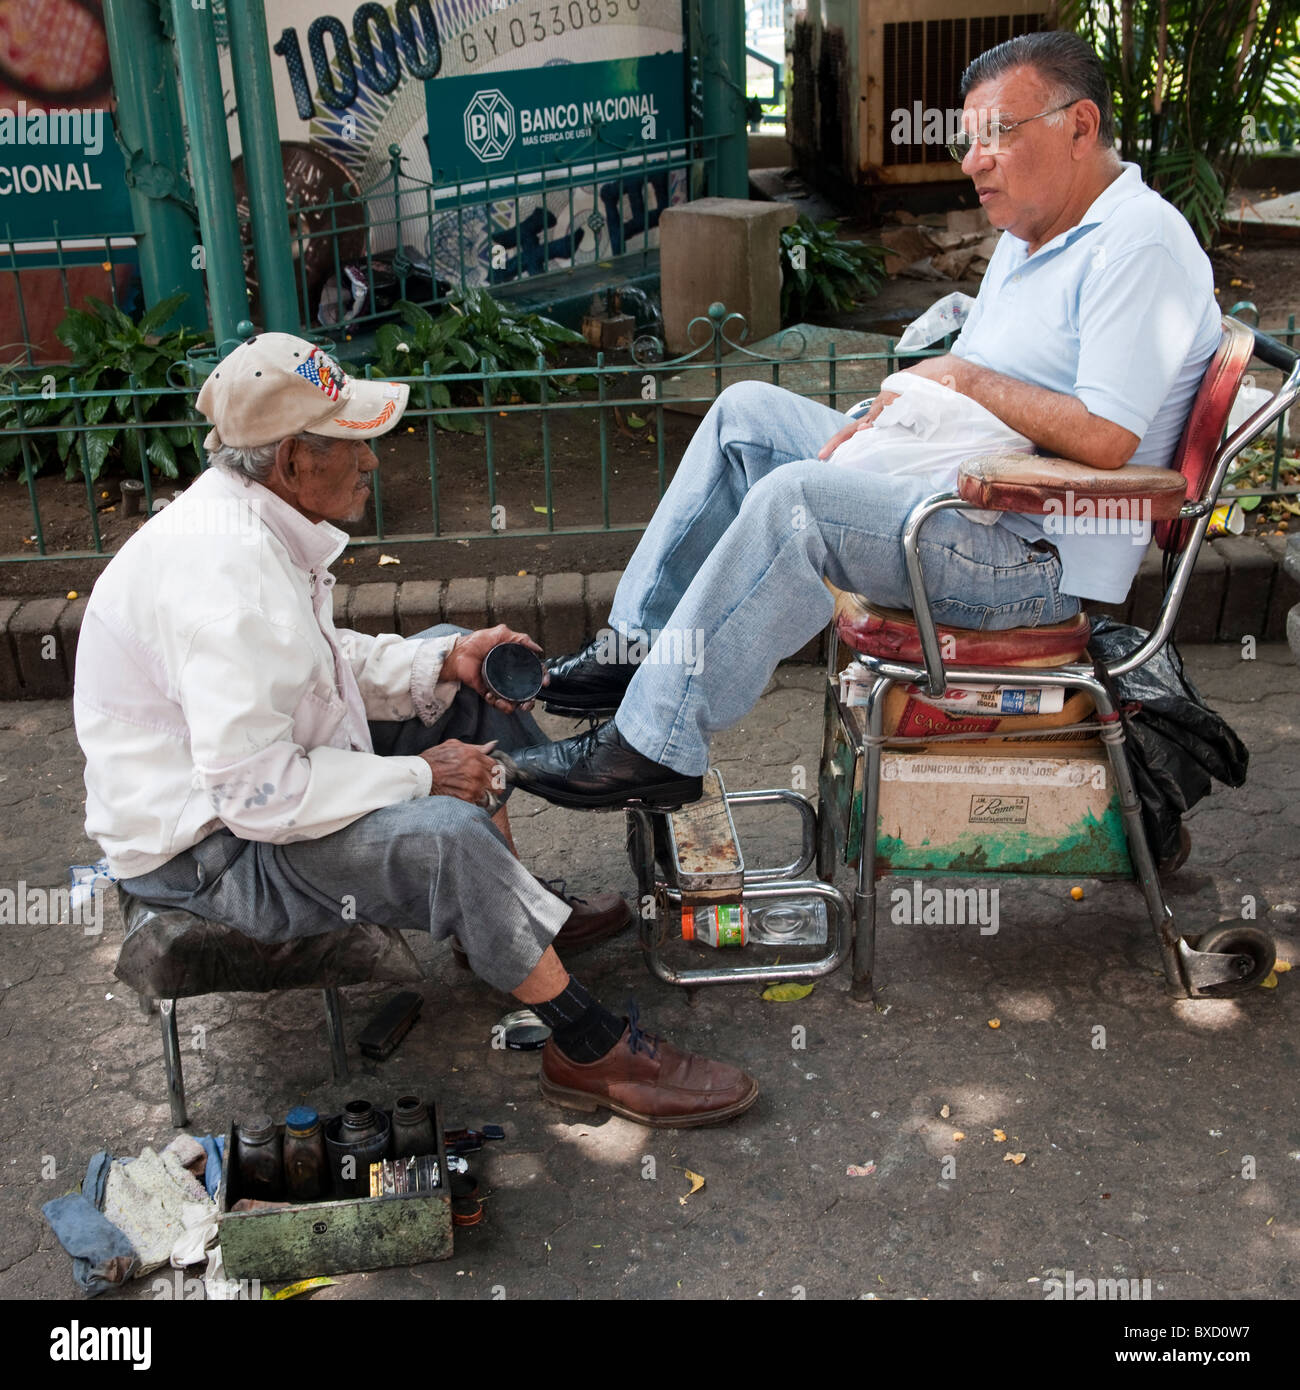 Man getting his shoes shined in San Jose Costa Rica - Stock Image